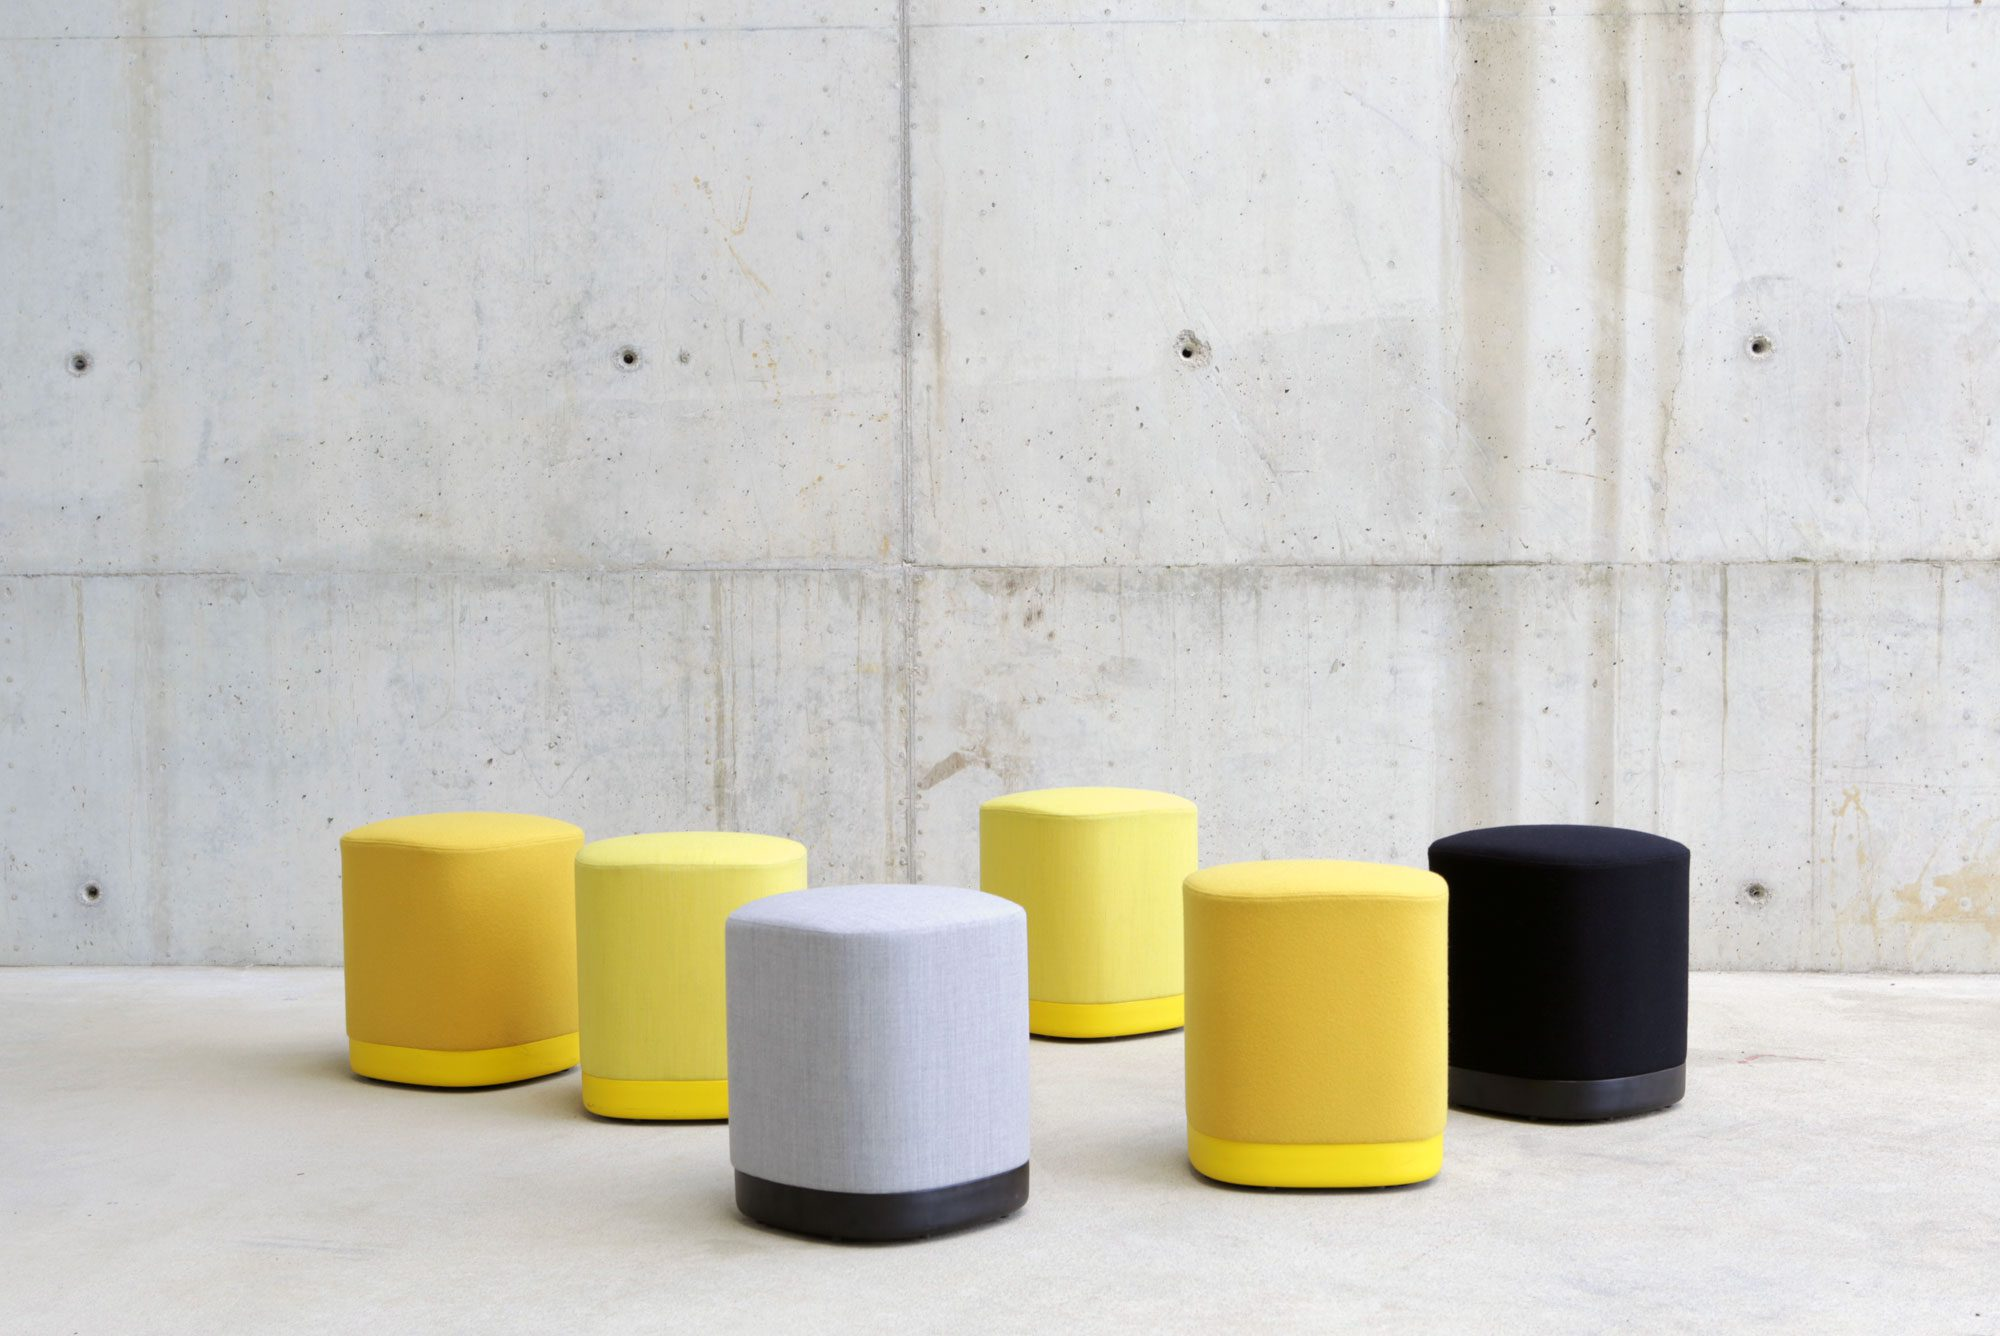 puck pouf, a soft seating to design your own experience